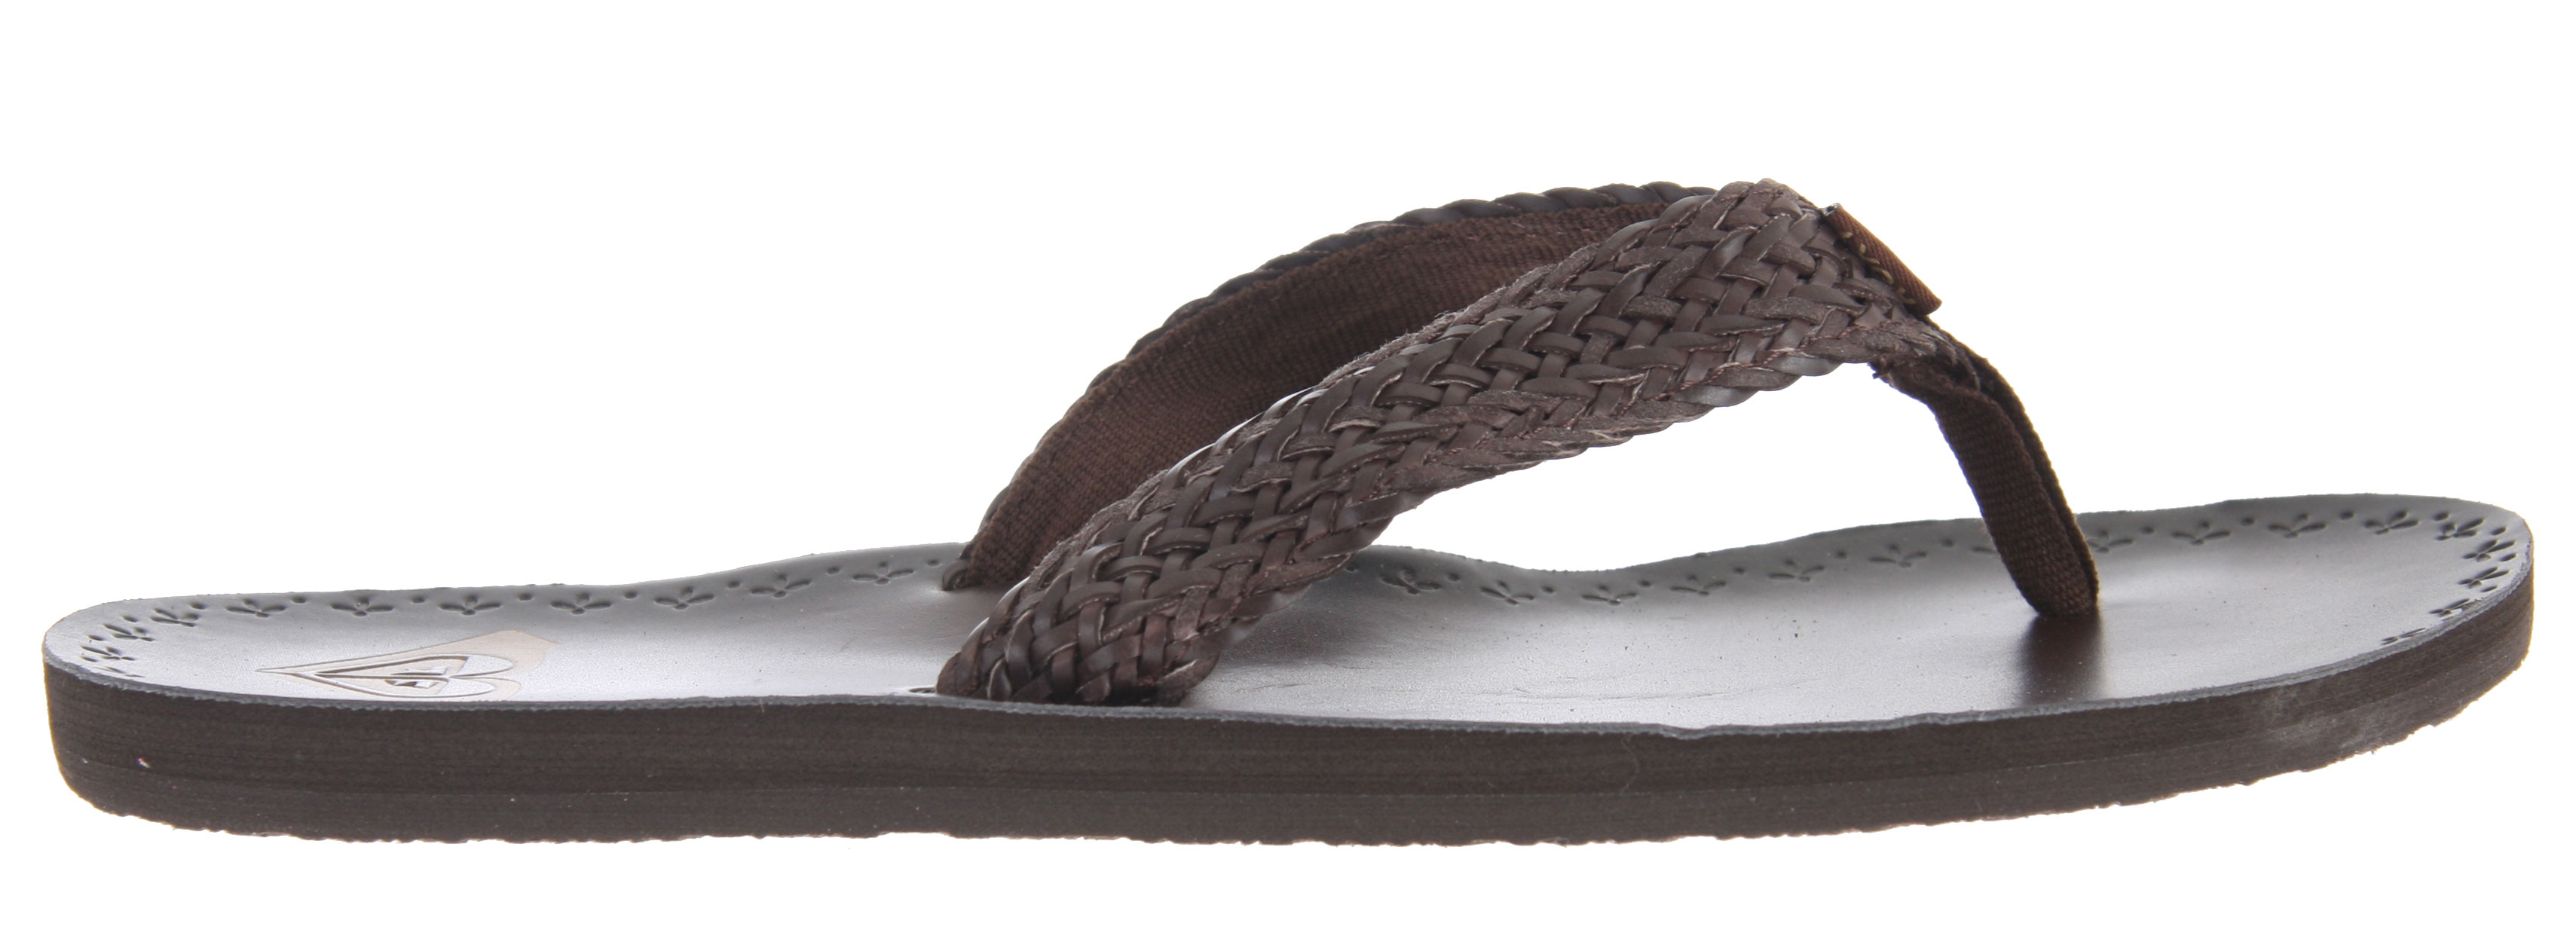 Surf Roxy Fiji Sandals are the perfect luxury flip-flop for pristine beaches or the halls of your school. Featuring a soft braided synthetic strap, soft poly-web toe post and lining, and embossed and burnished smooth synthetic insole. Dress them up with a sundress or down with your favorite jeans. - $32.00